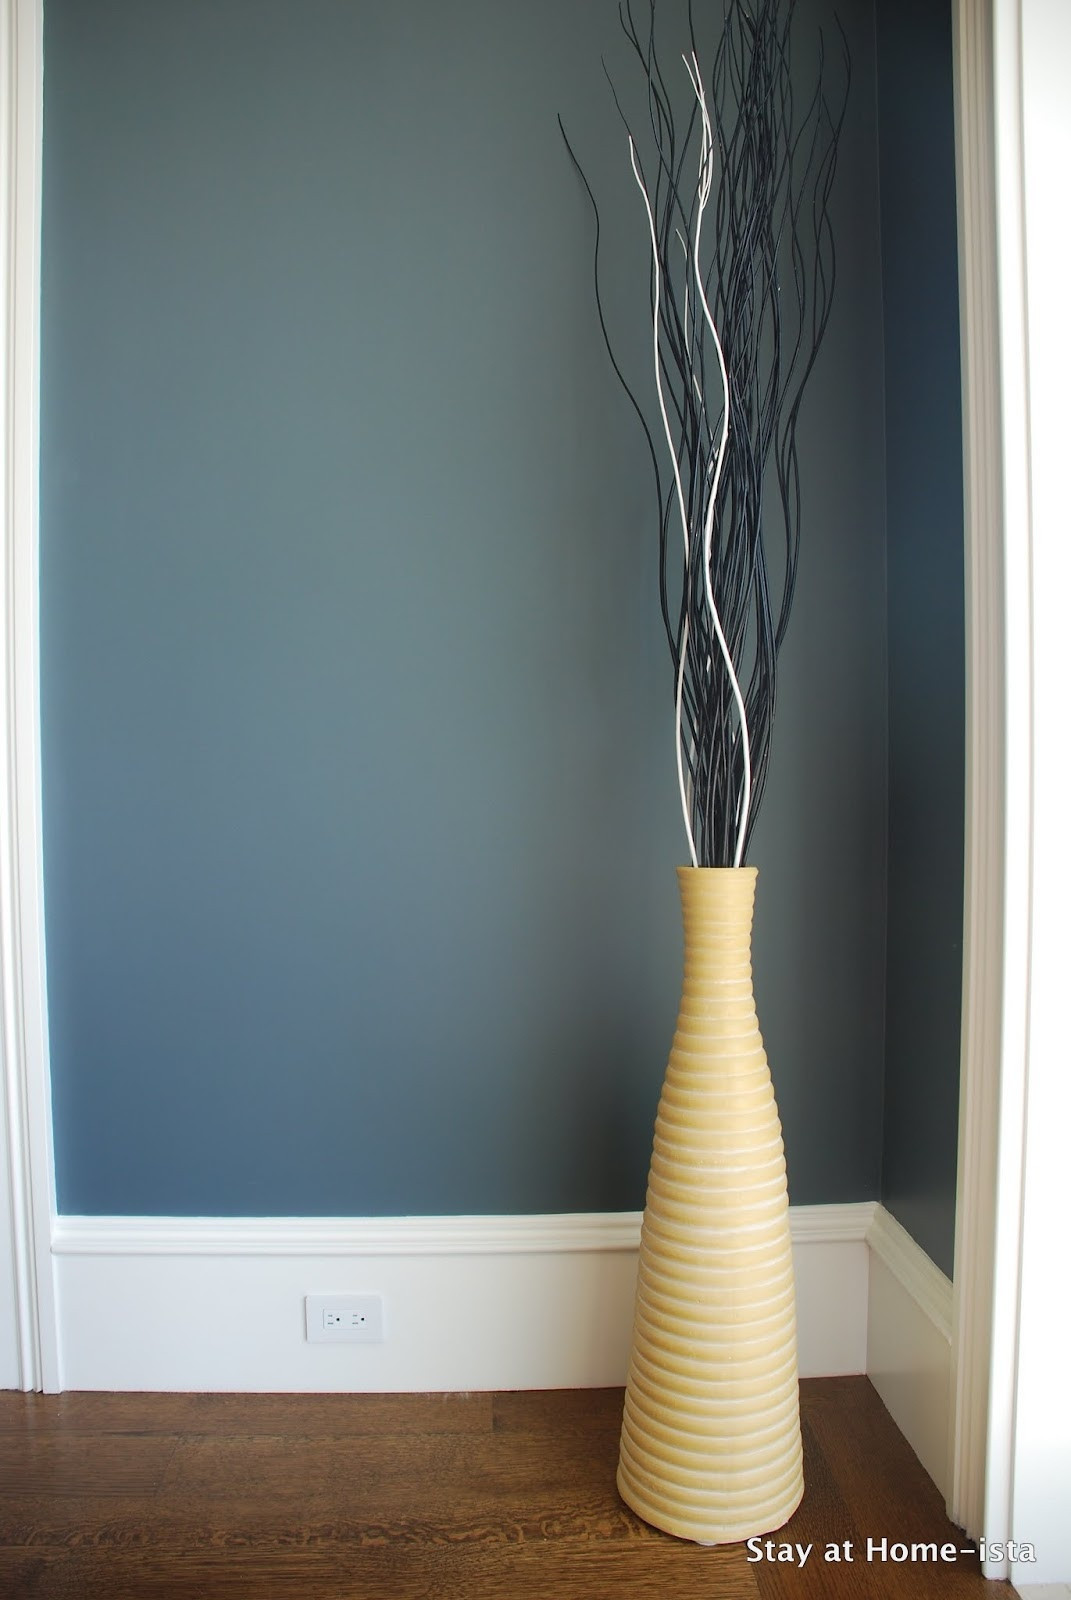 twigs for tall vases of floor vase branches photograph ikea interior design best pe s5h throughout floor vase branches photograph ikea interior design best pe s5h vases ikea floor vase i 0d